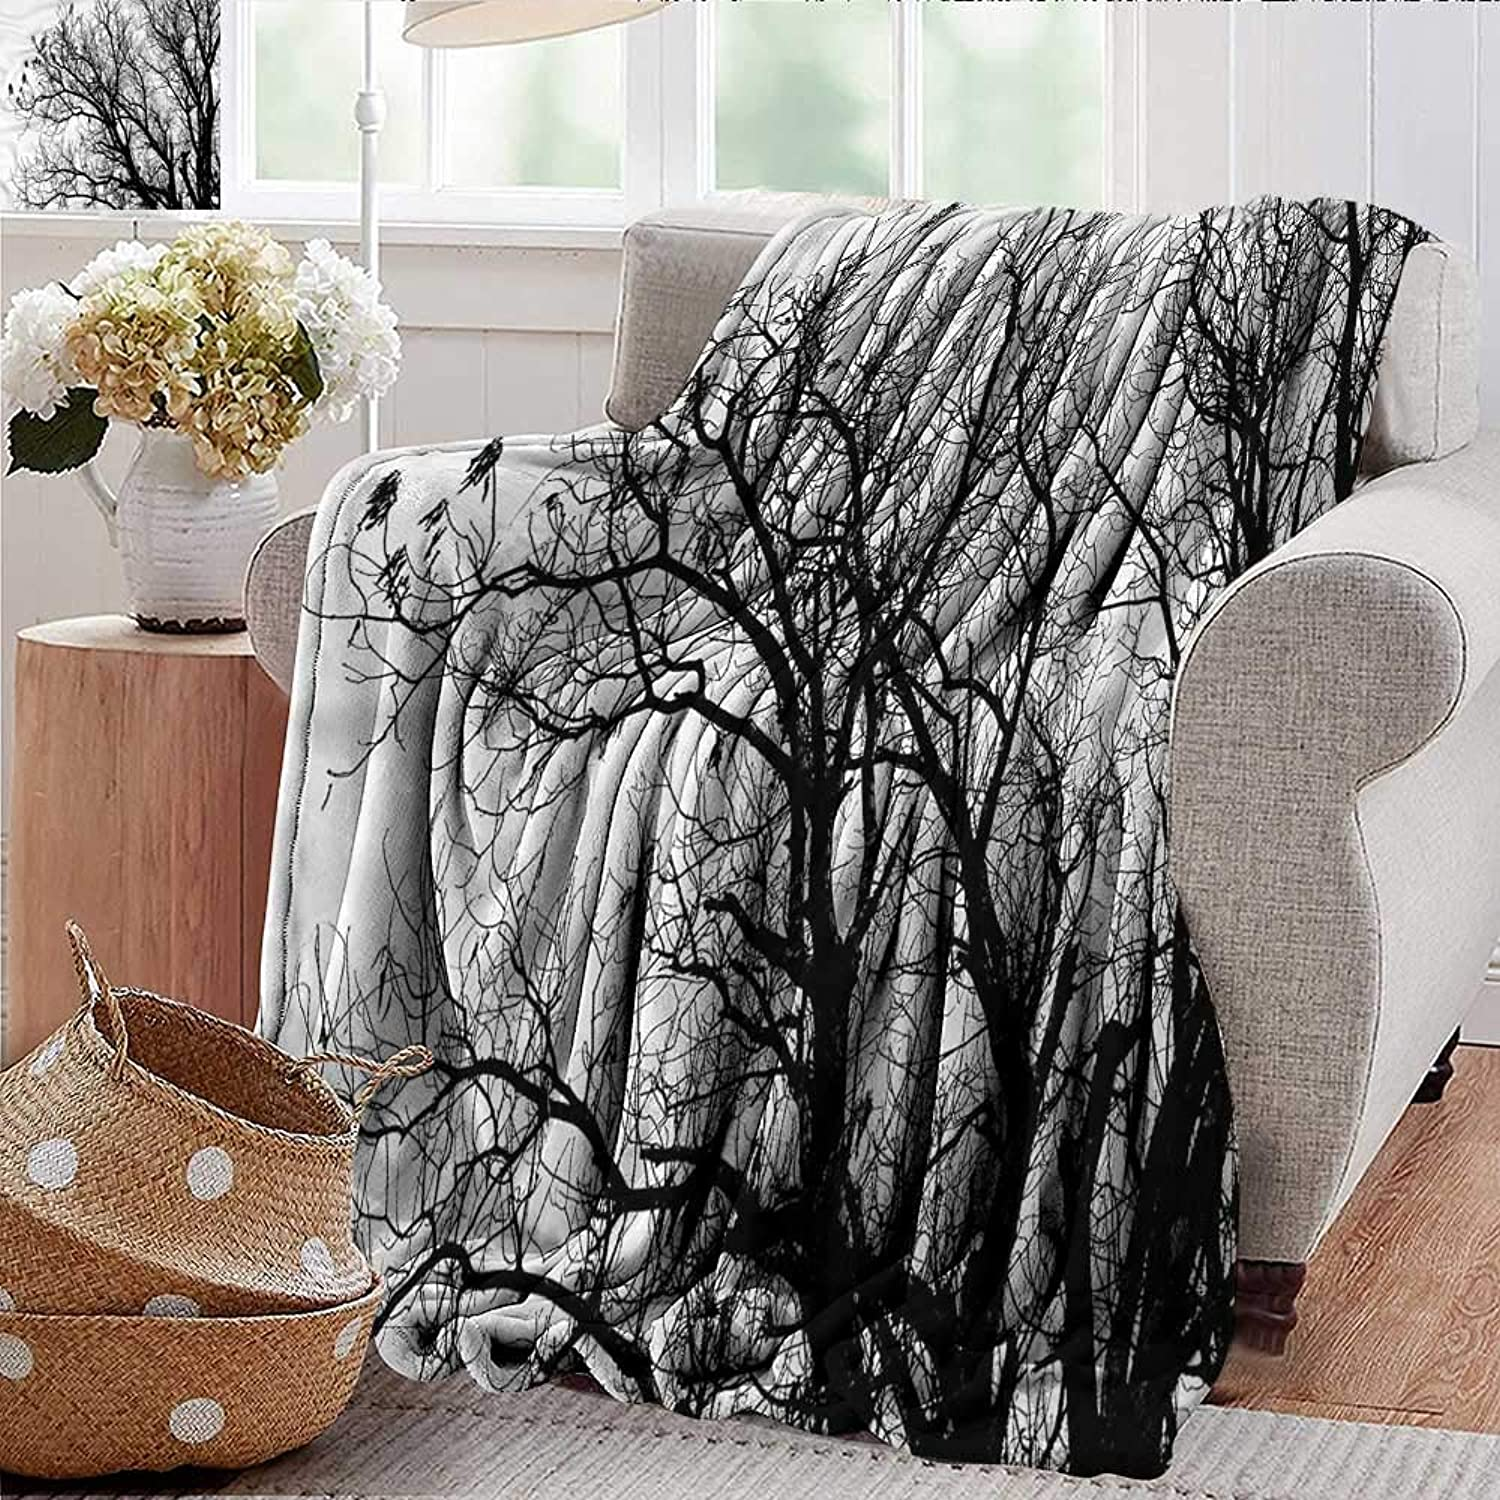 Xaviera Doherty Summer Blanket Nature,Autumn Fall Tree Branch Weighted Blanket for Adults Kids, Better Deeper Sleep 35 x60